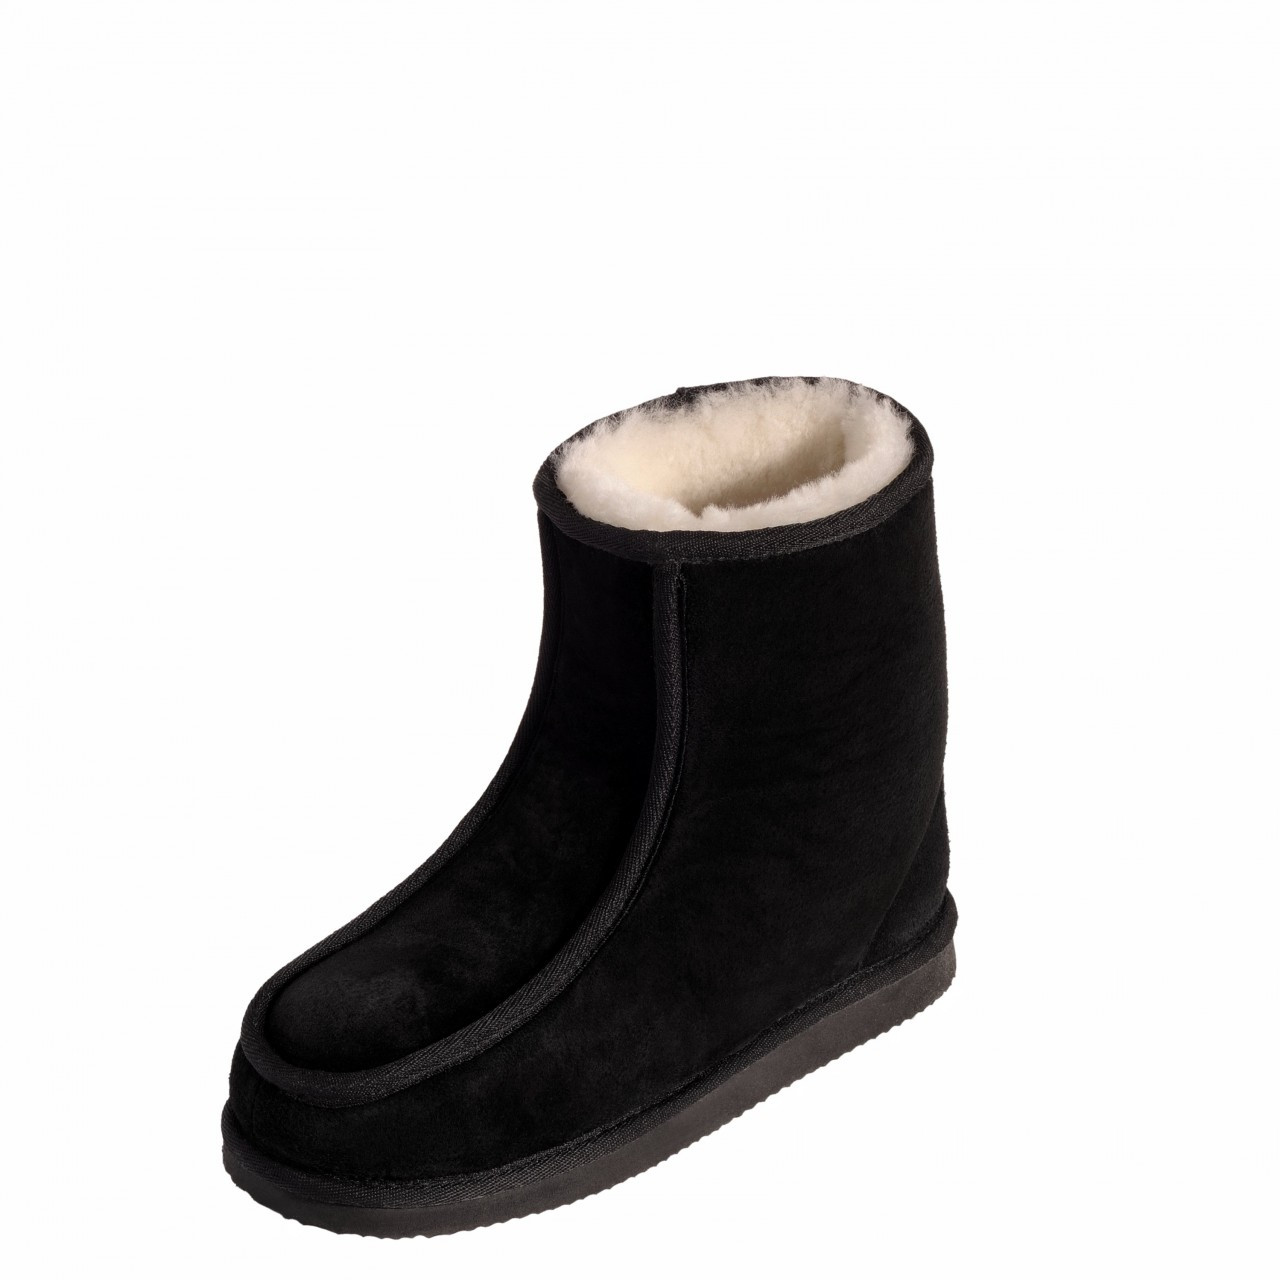 39b63f46993 Mi Woollies Emu Ugg Boots / Slipper - Online Shopping